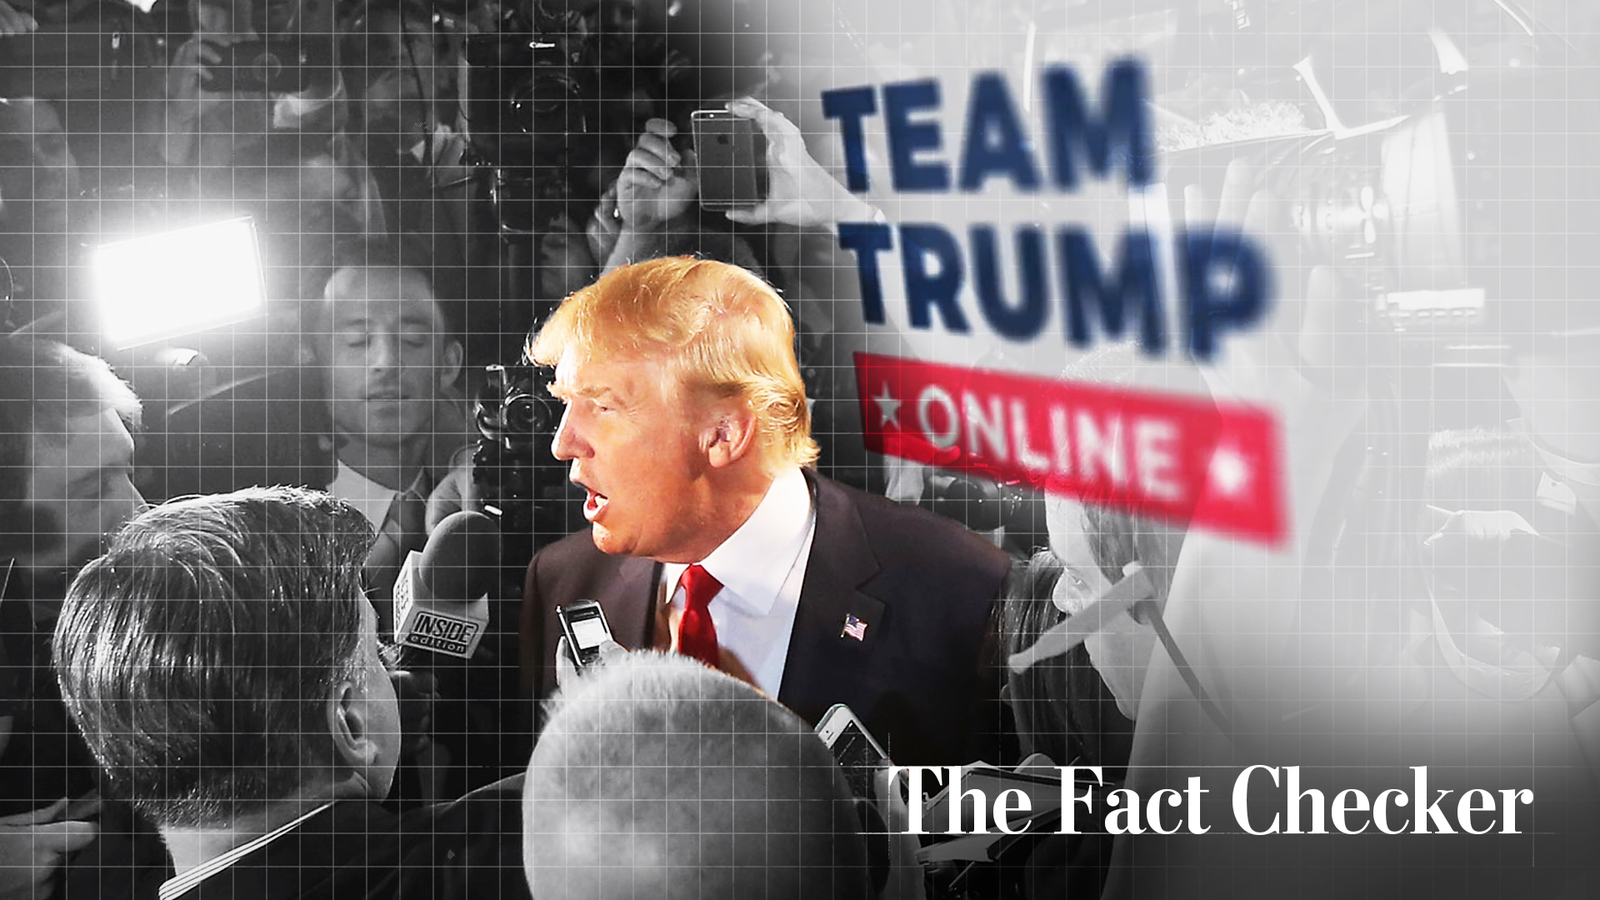 Facebook's fact-checkers have ruled claims in Trump ads are false — but no one is telling Facebook's users